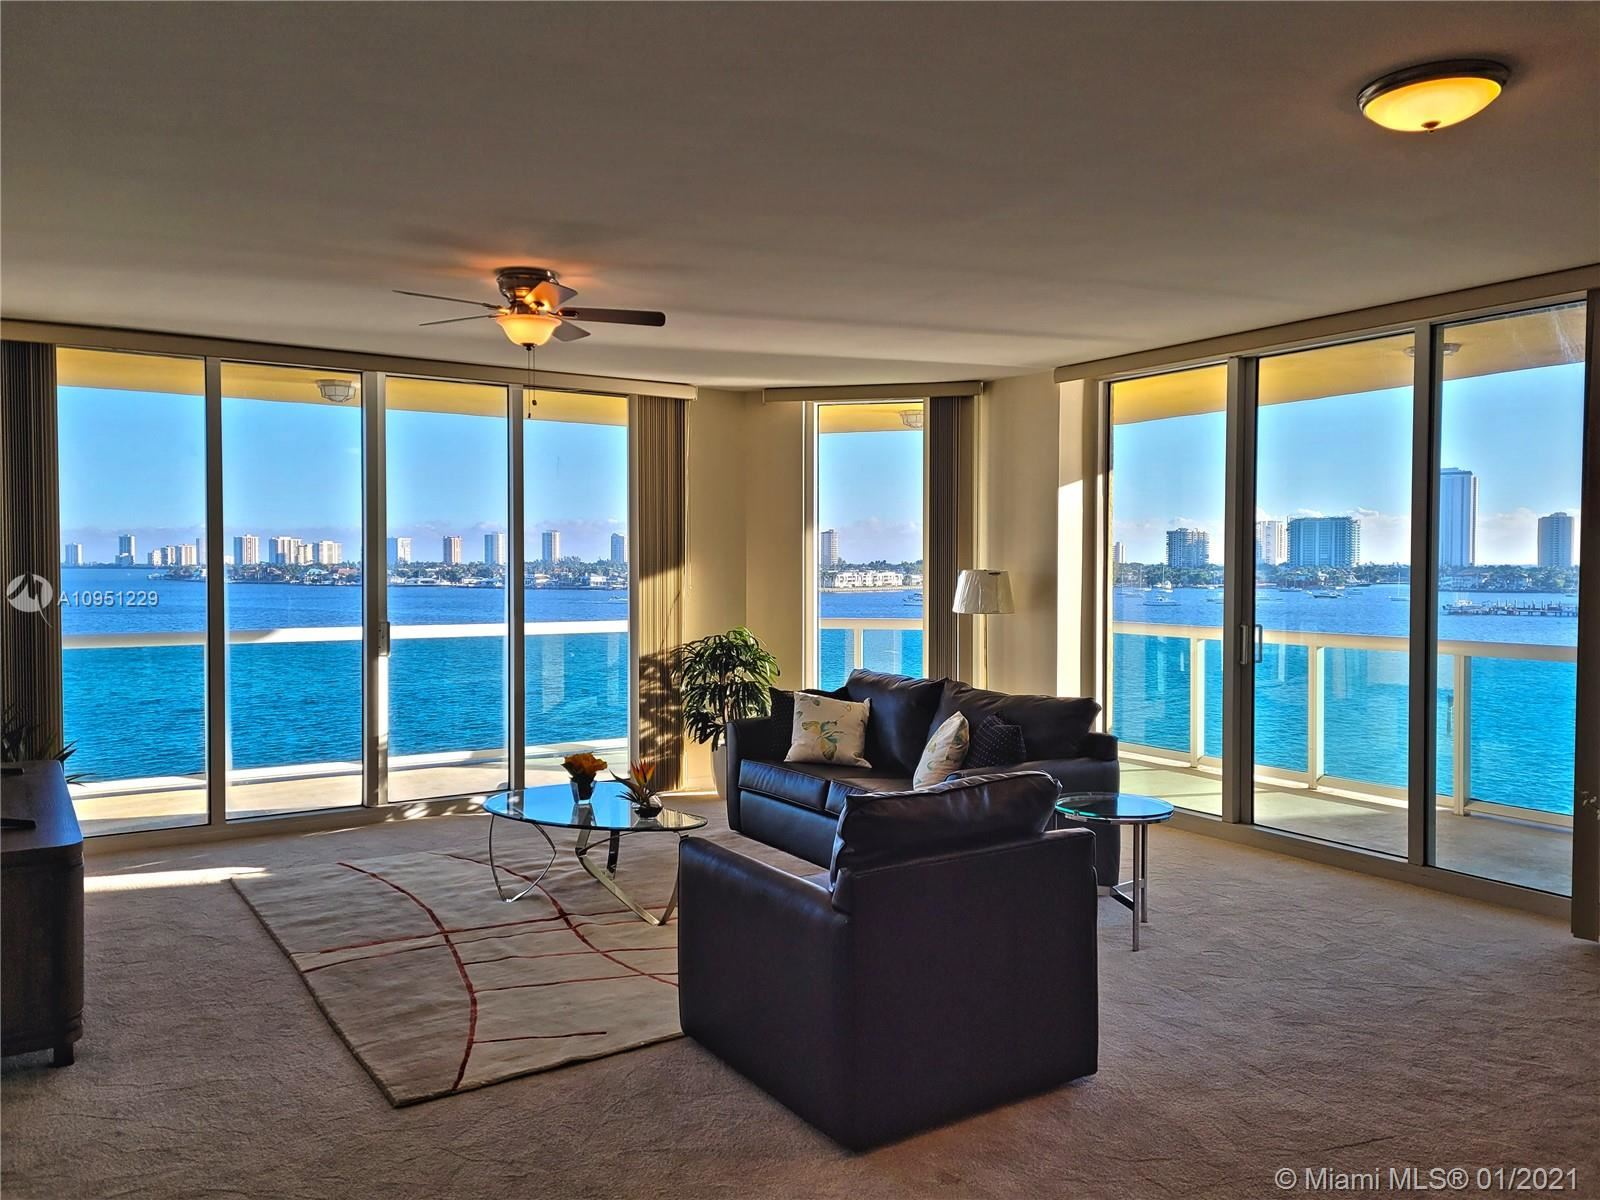 2650 Lake Shore Dr #606, Riviera Beach, FL 33404 - #: A10951229